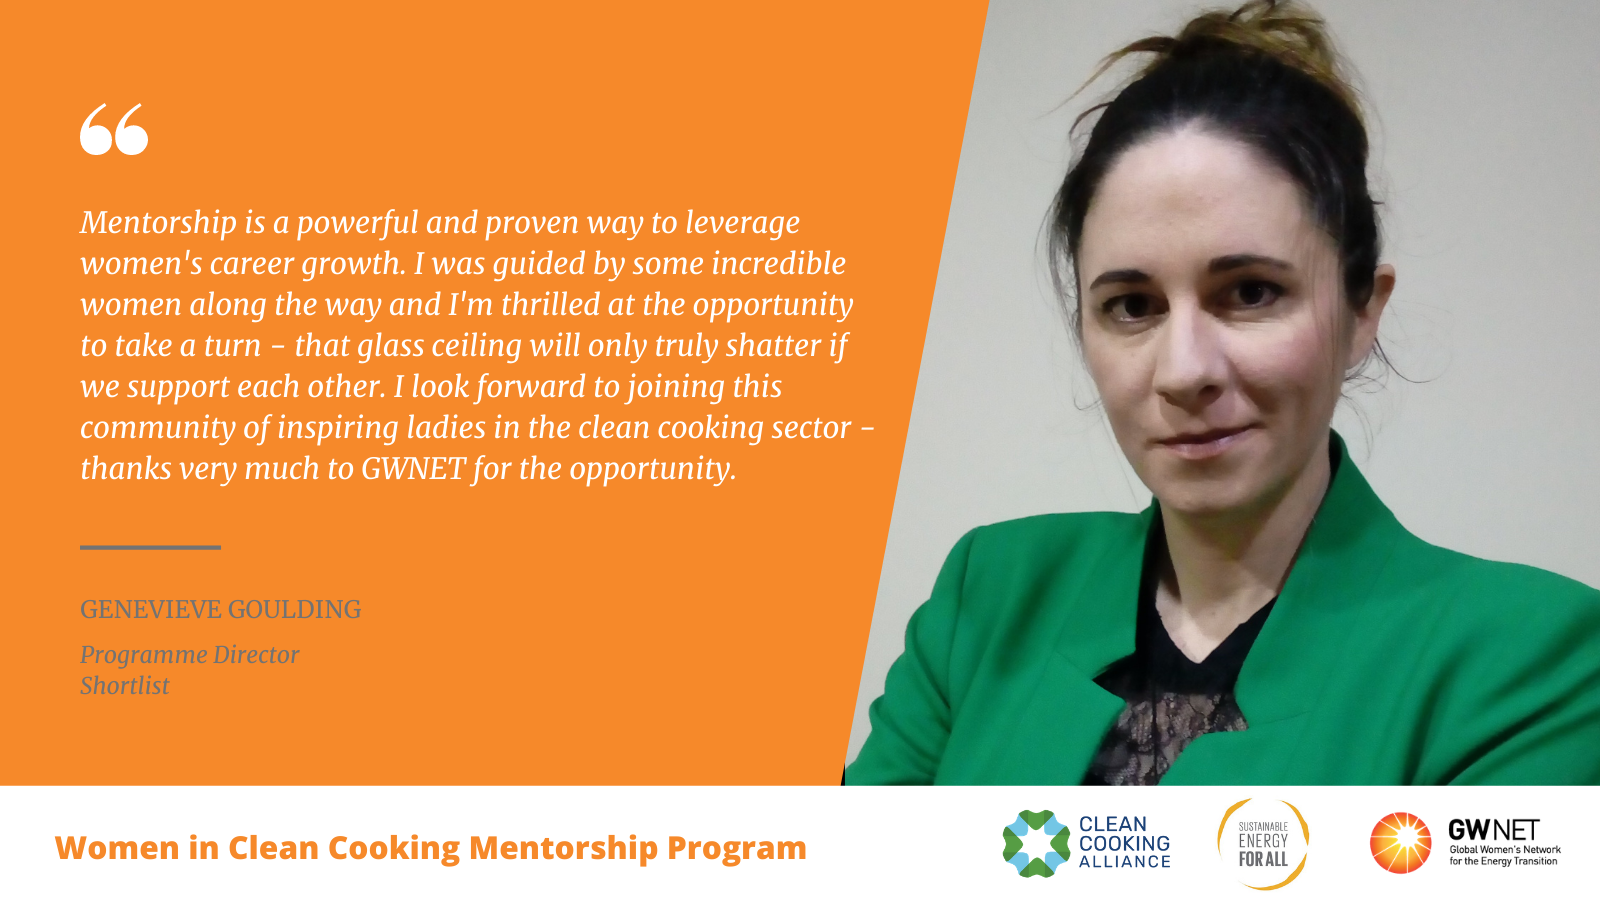 Genevieve Goulding Women in Clean Cooking Mentorship Program